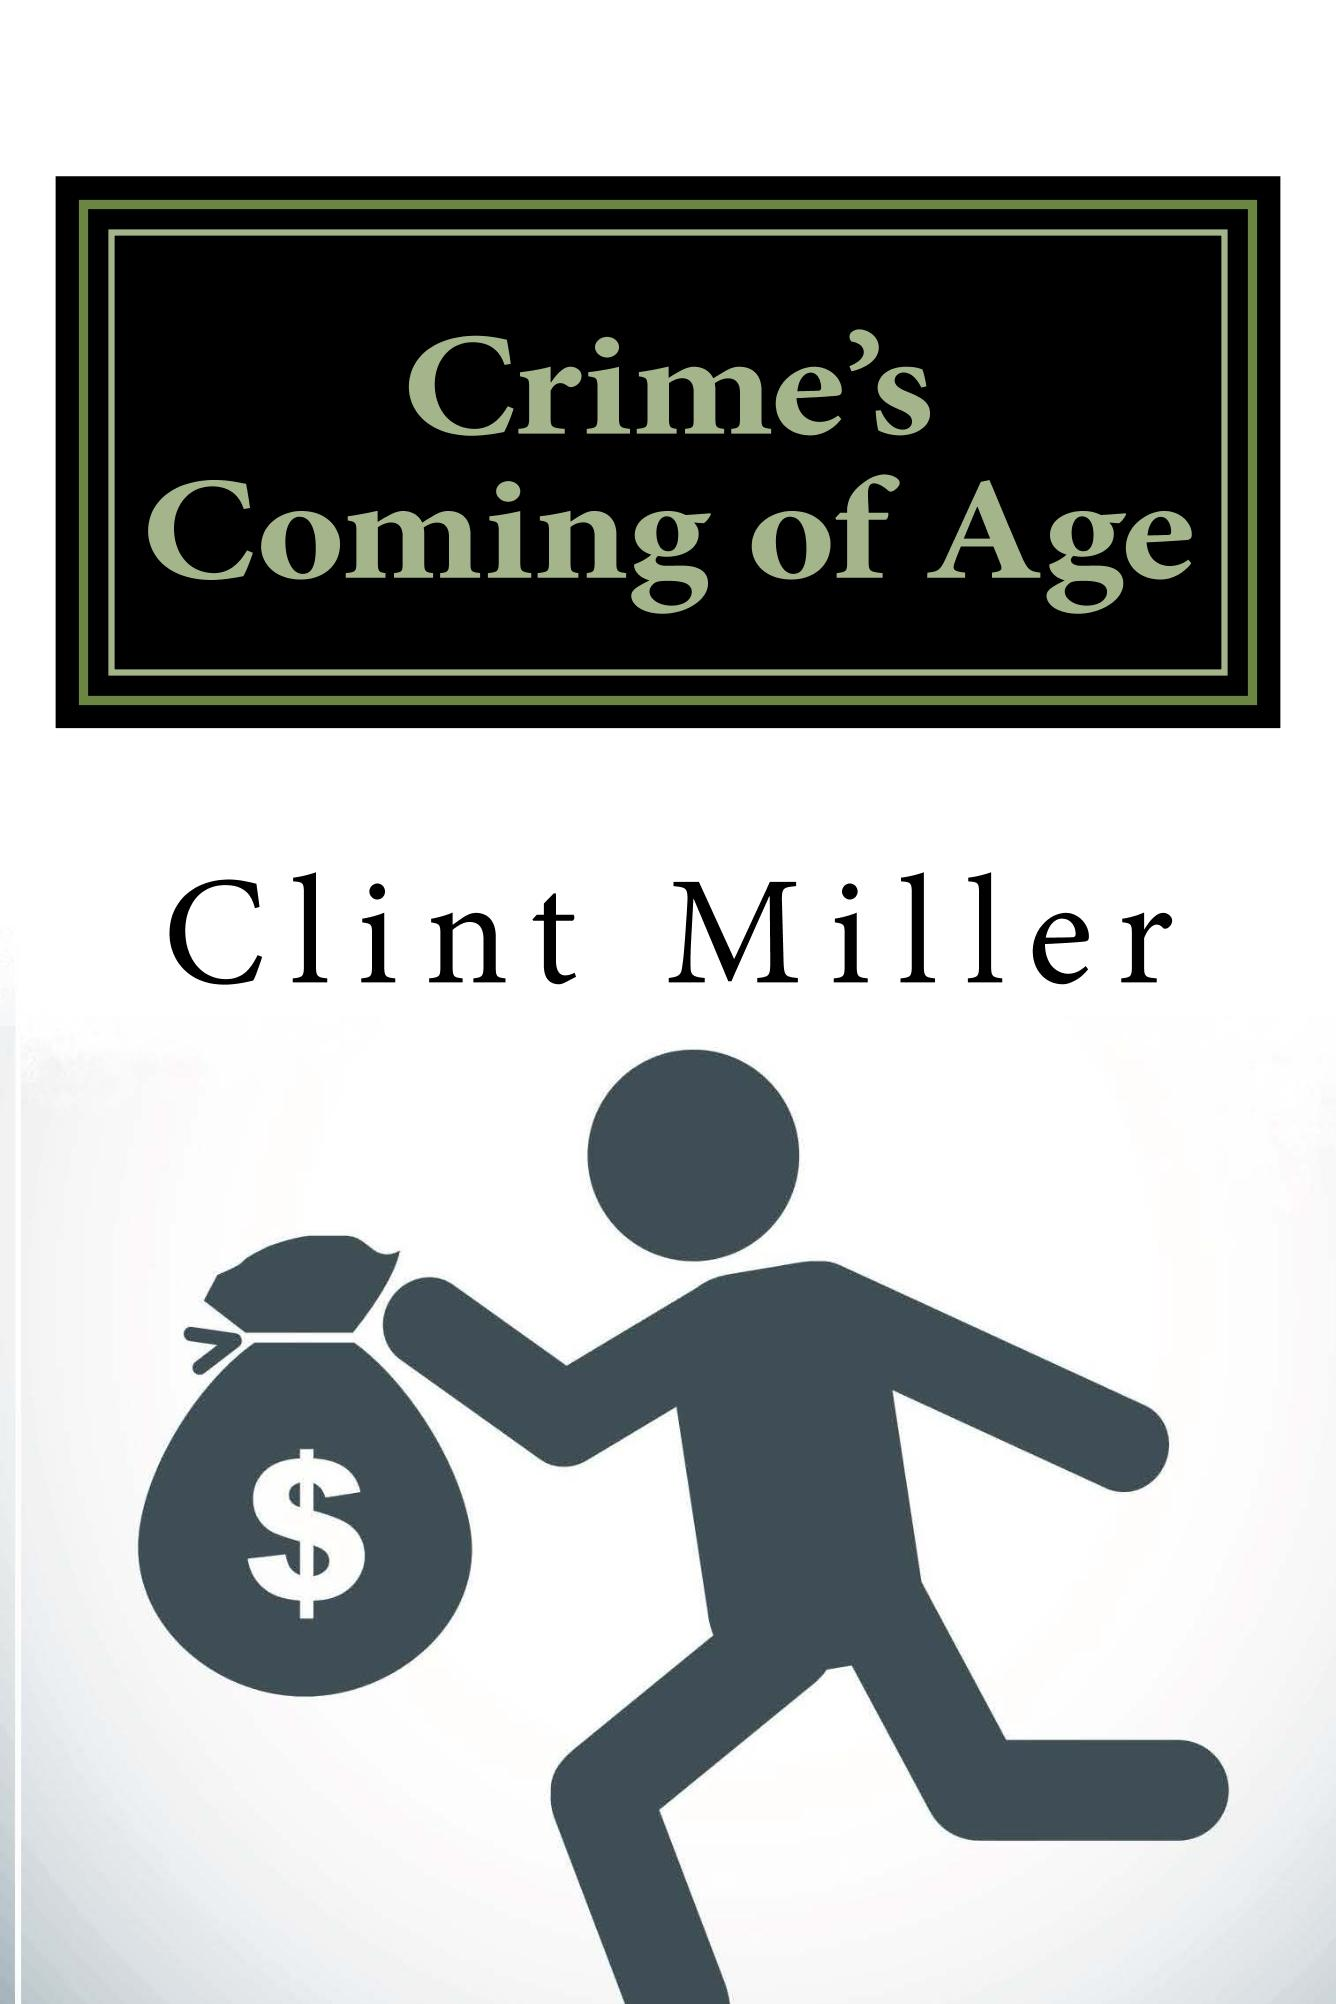 Crime's Coming of Age